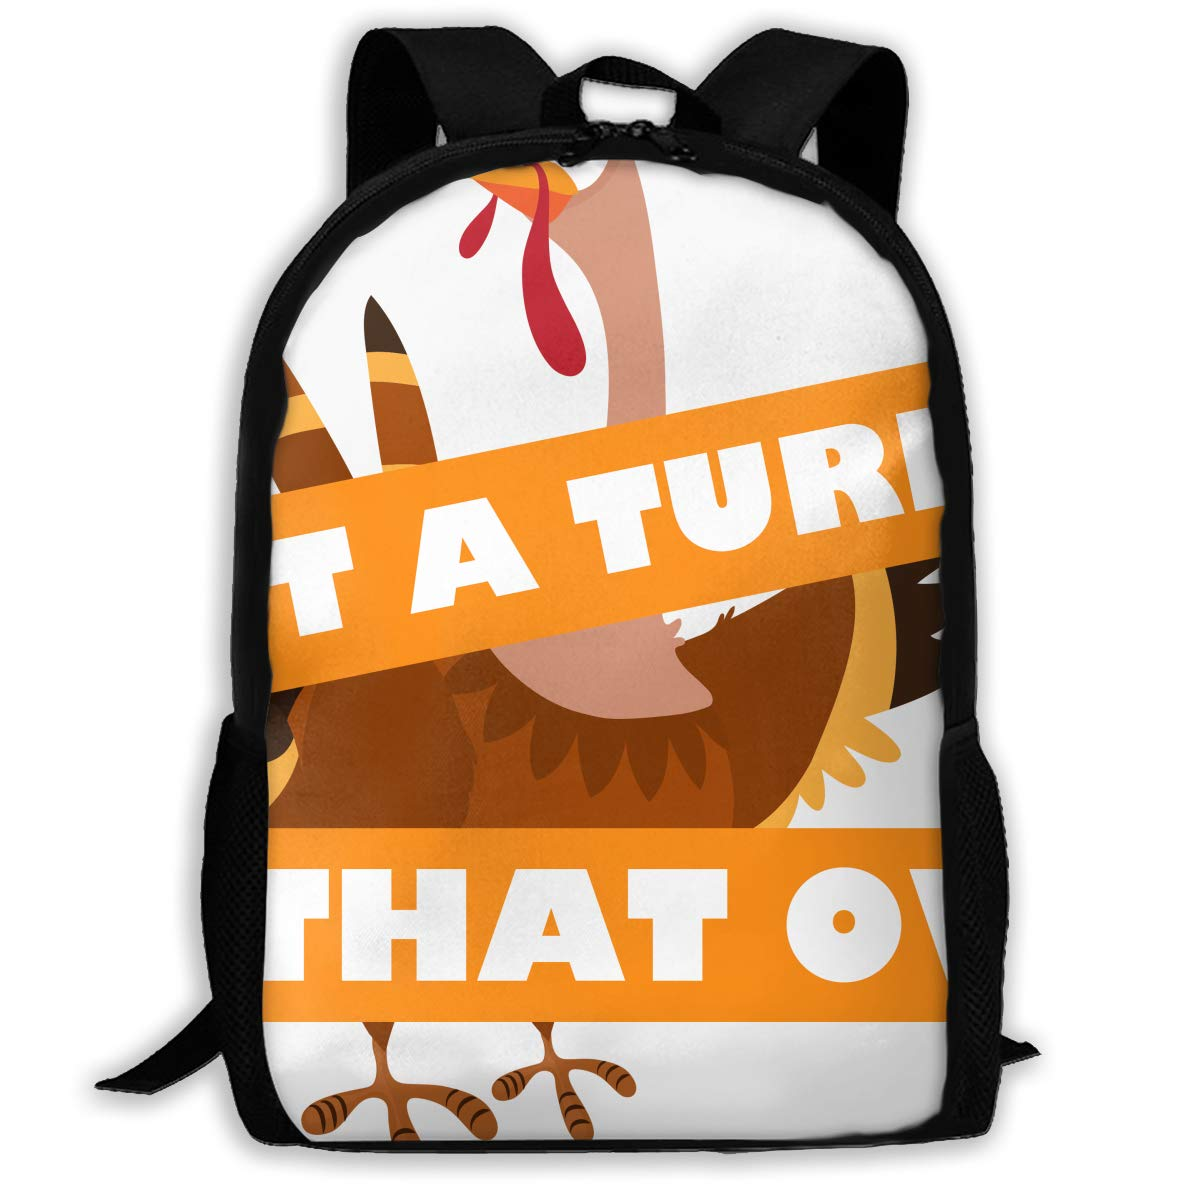 Travel Backpack Laptop Backpack Large Diaper Bag - Funny Thanksgiving I Put A Turkey in That Oven Backpack School Backpack for Women & Men